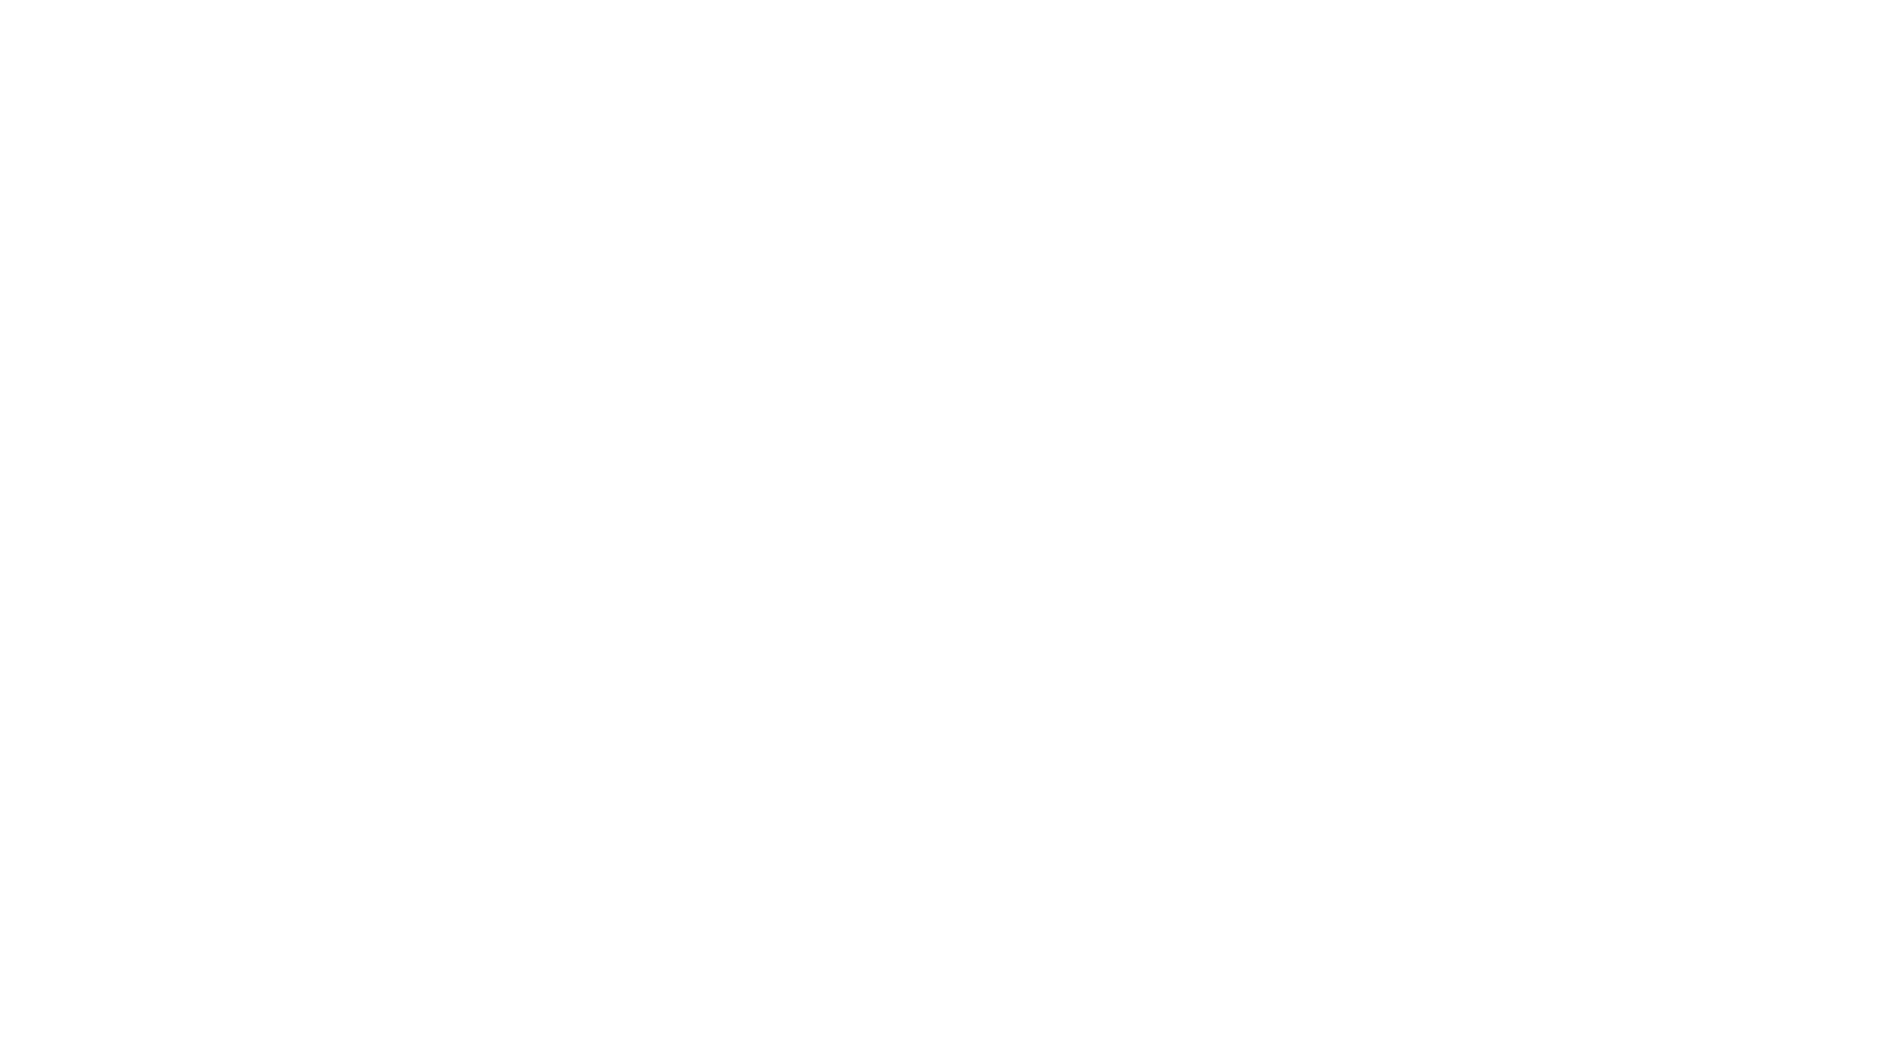 THE SHOP ONLINE #LookInFront